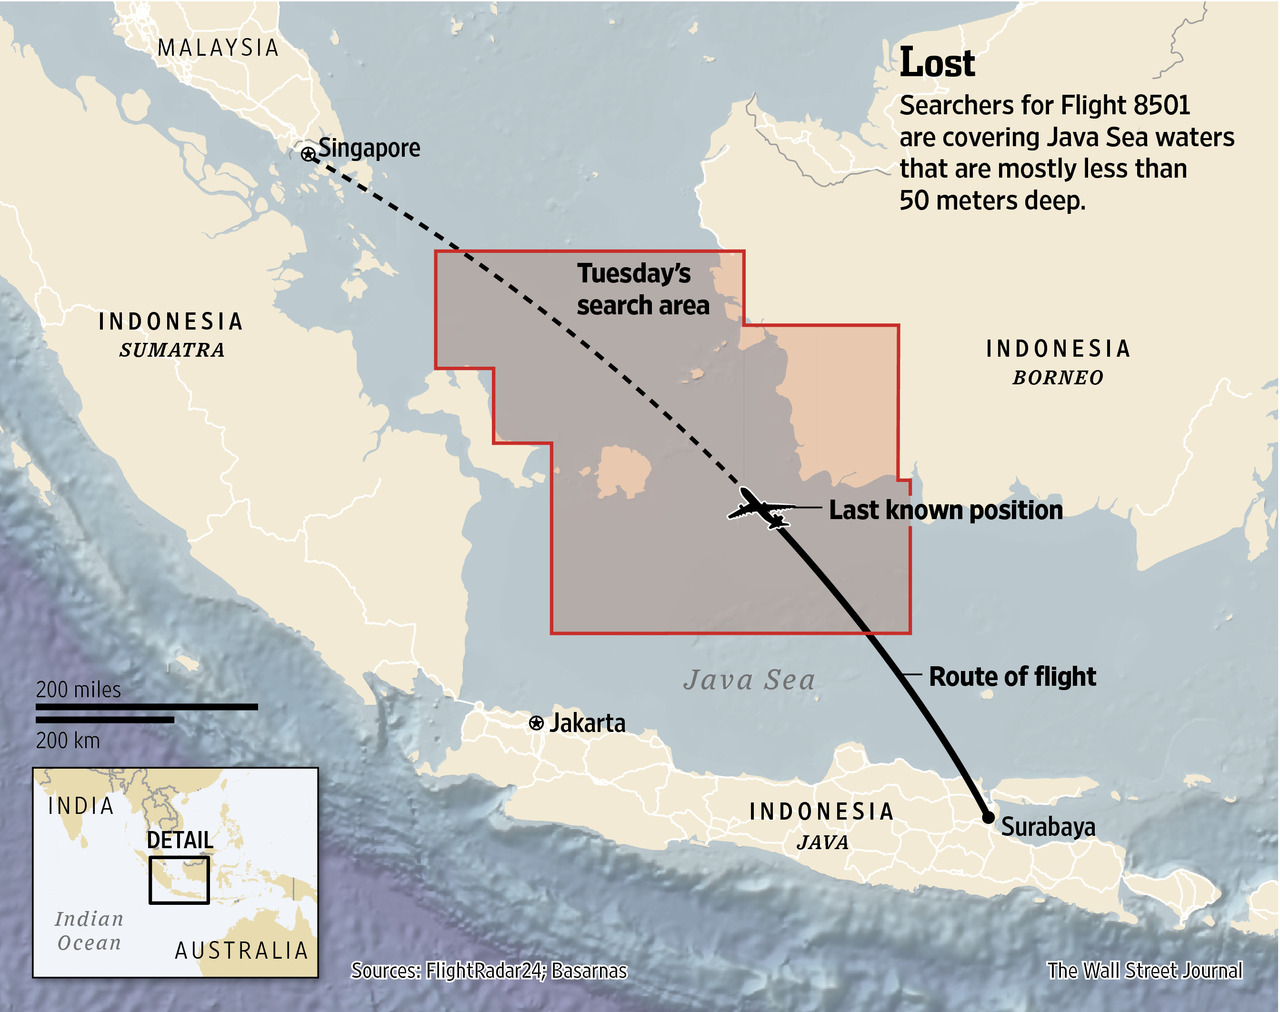 A day after futile efforts to locate the A320 operating Flight QZ8501, the official search area on Tuesday (30 December 2014) has more than doubled according to this WSJ graphic